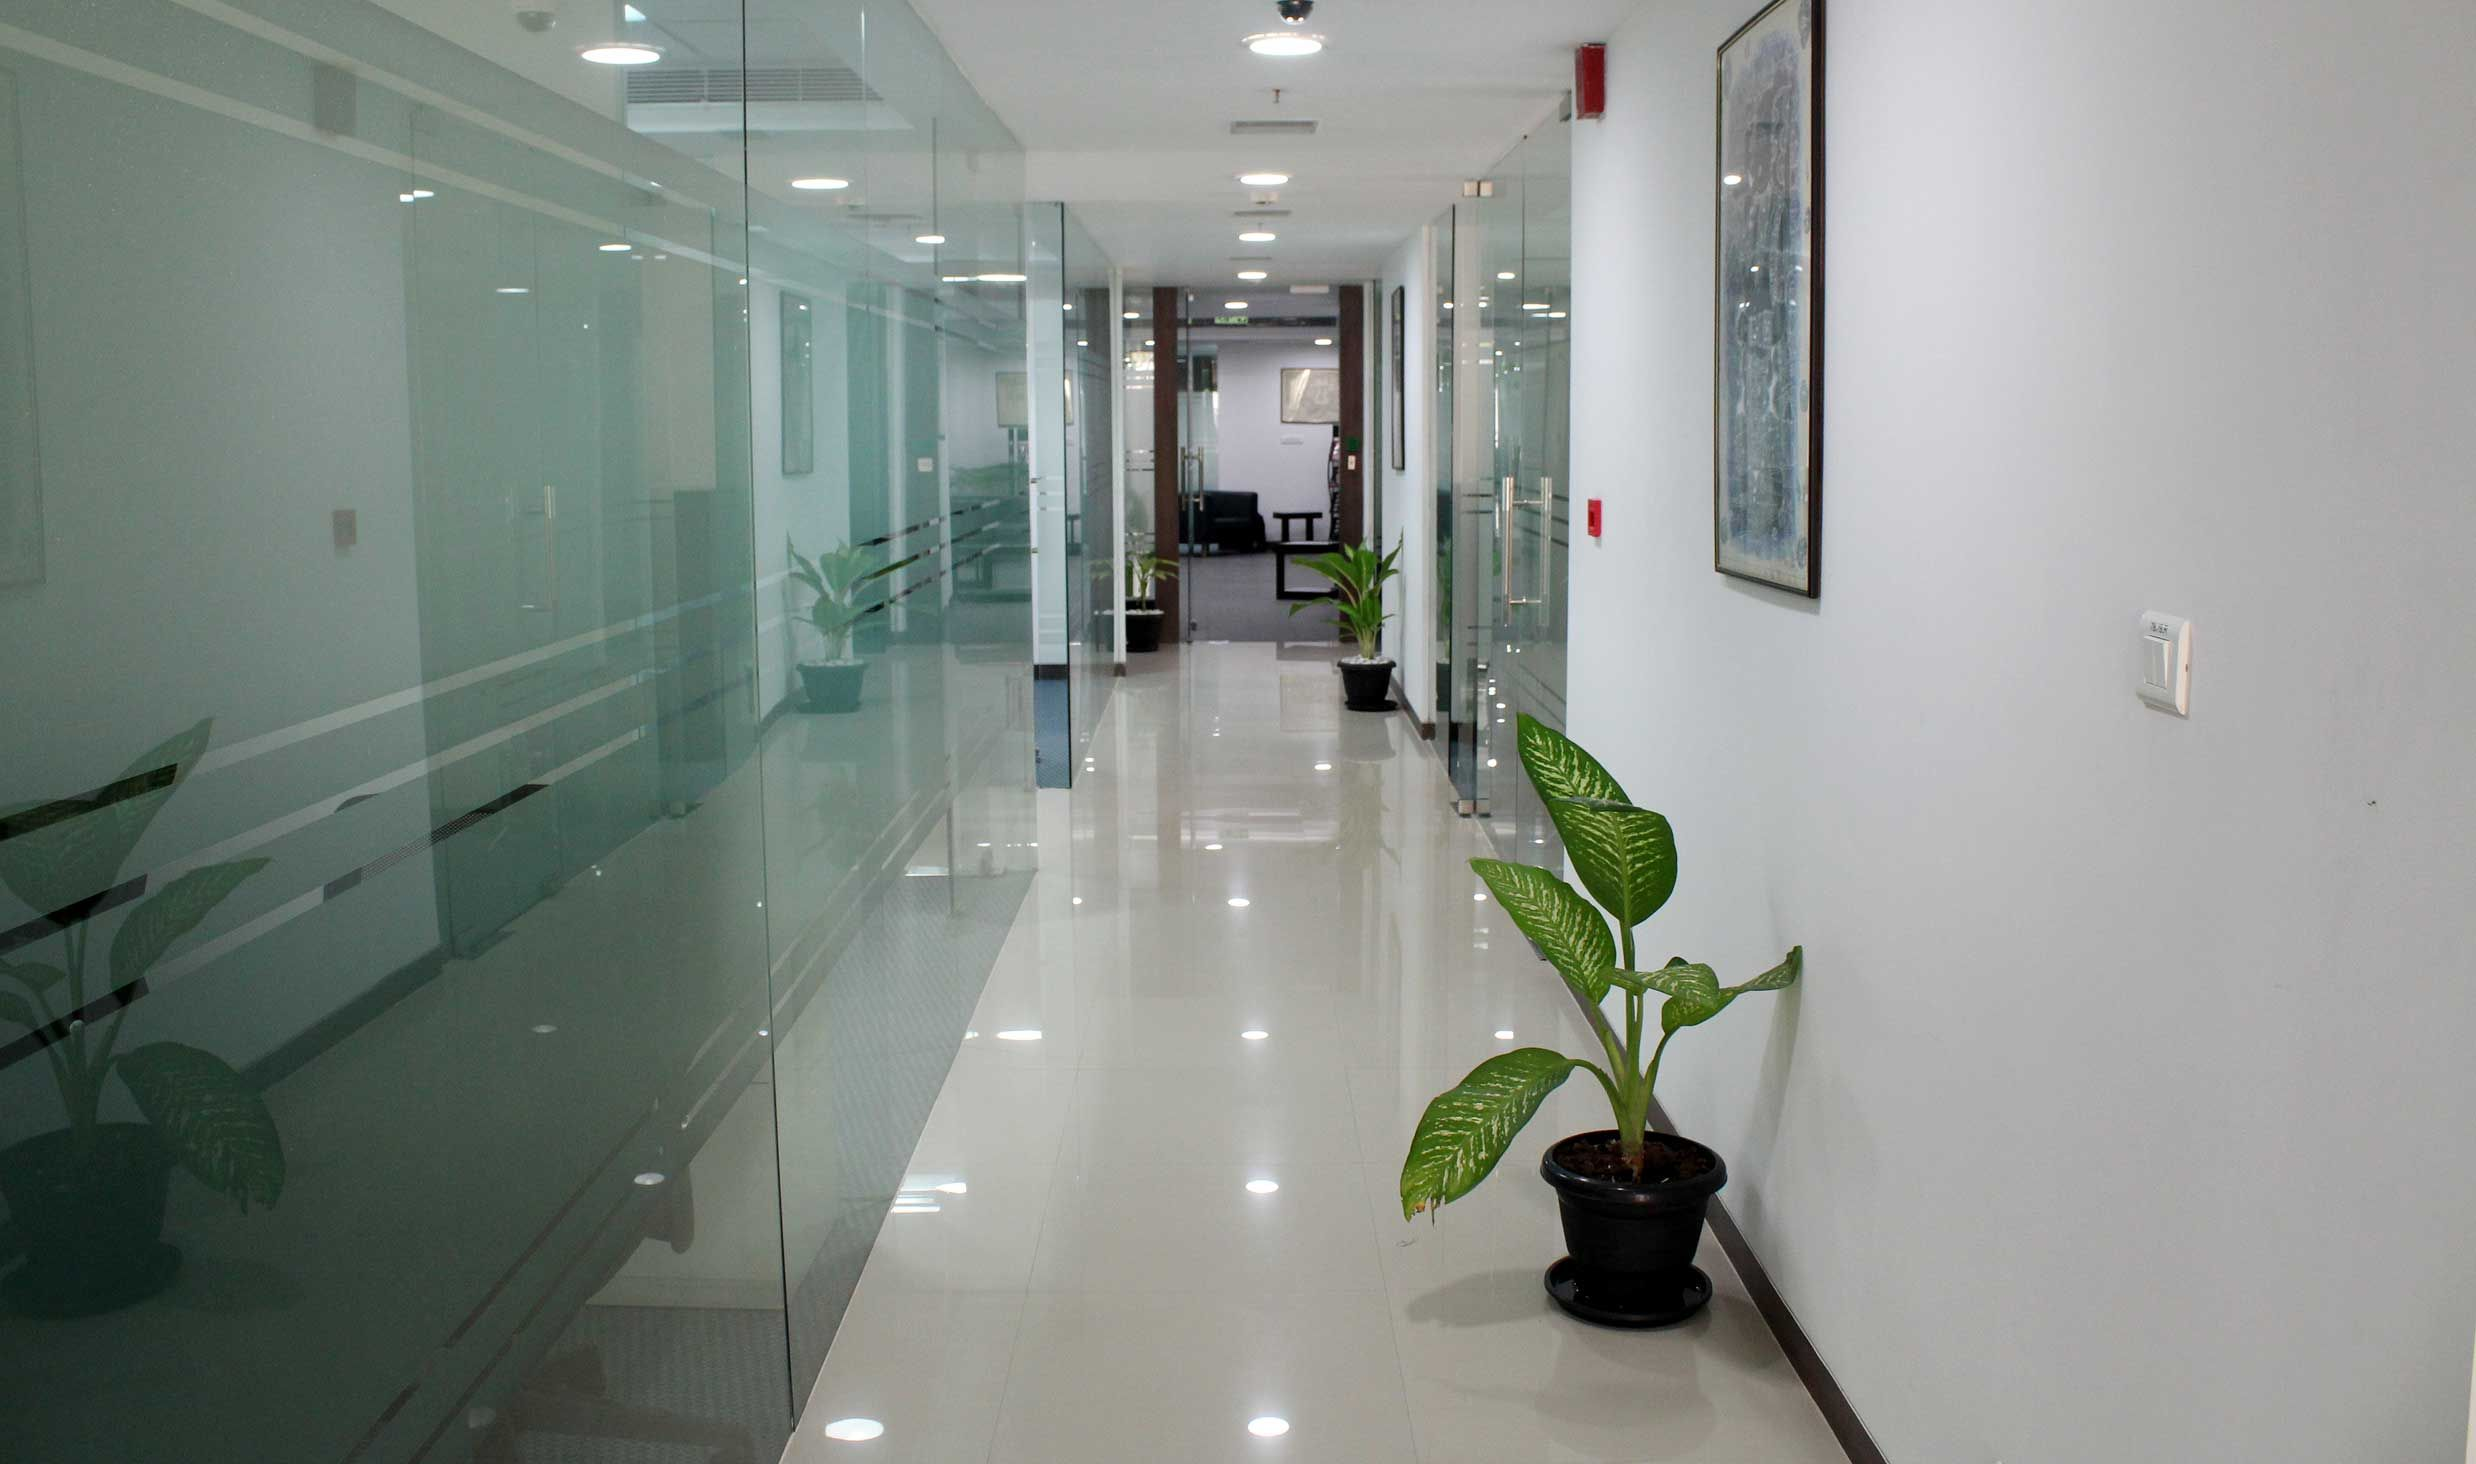 Awesome Corridor at iKeva Business Center in Hyderabad business